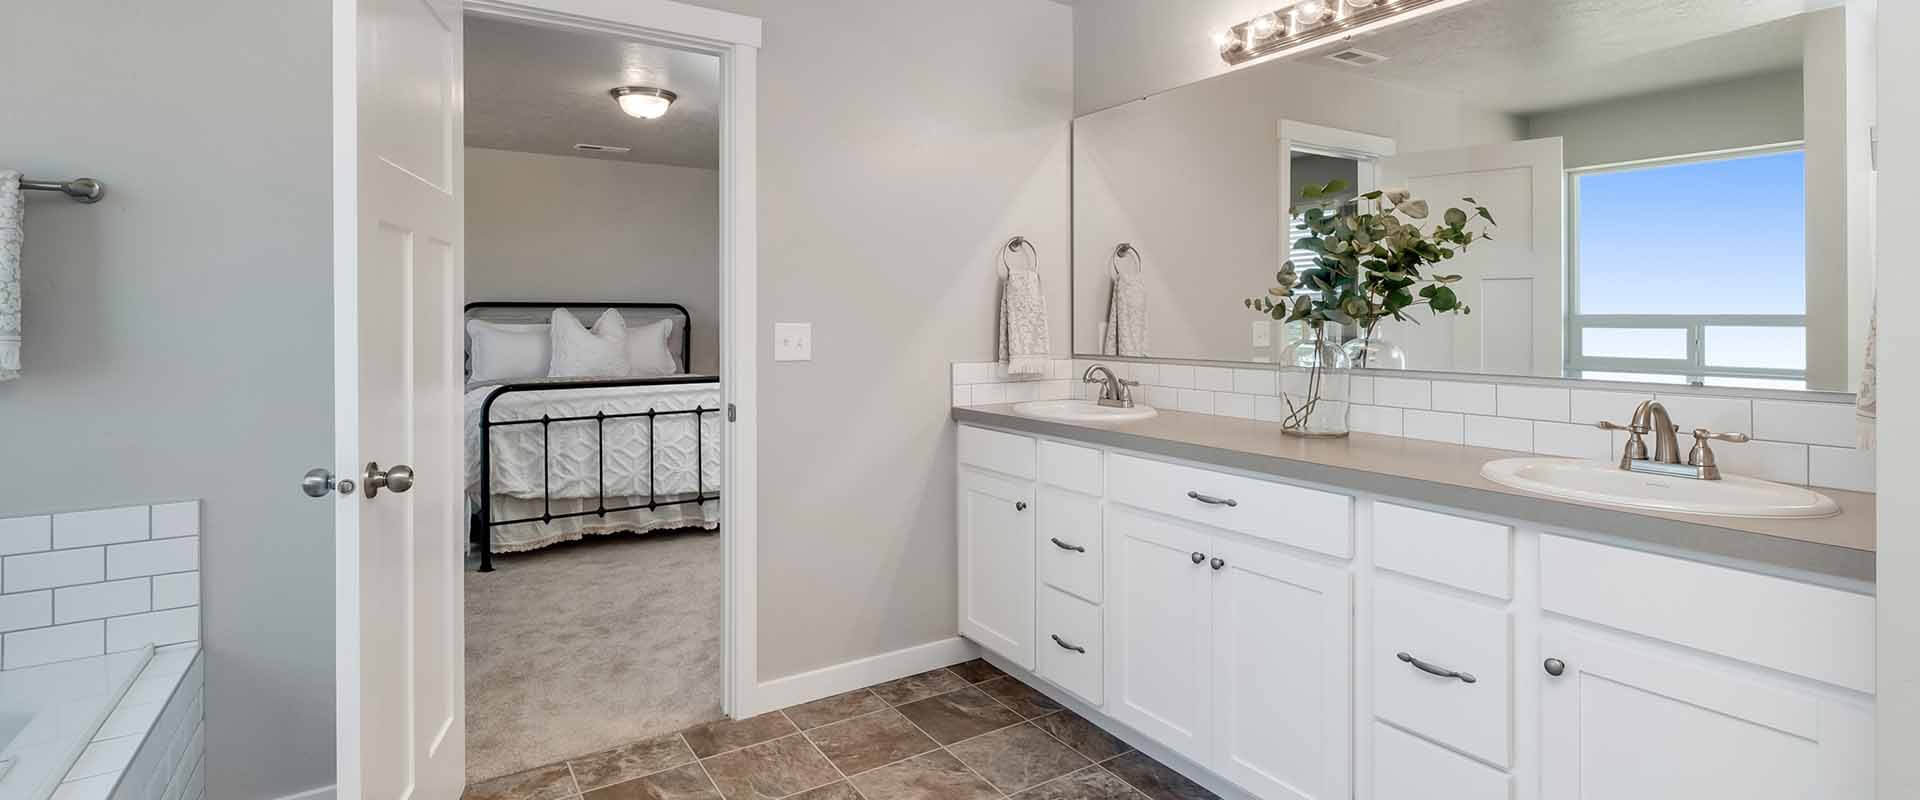 Garnet_Hubble_Homes_New_Homes_Boise_Bathroom1.jpg